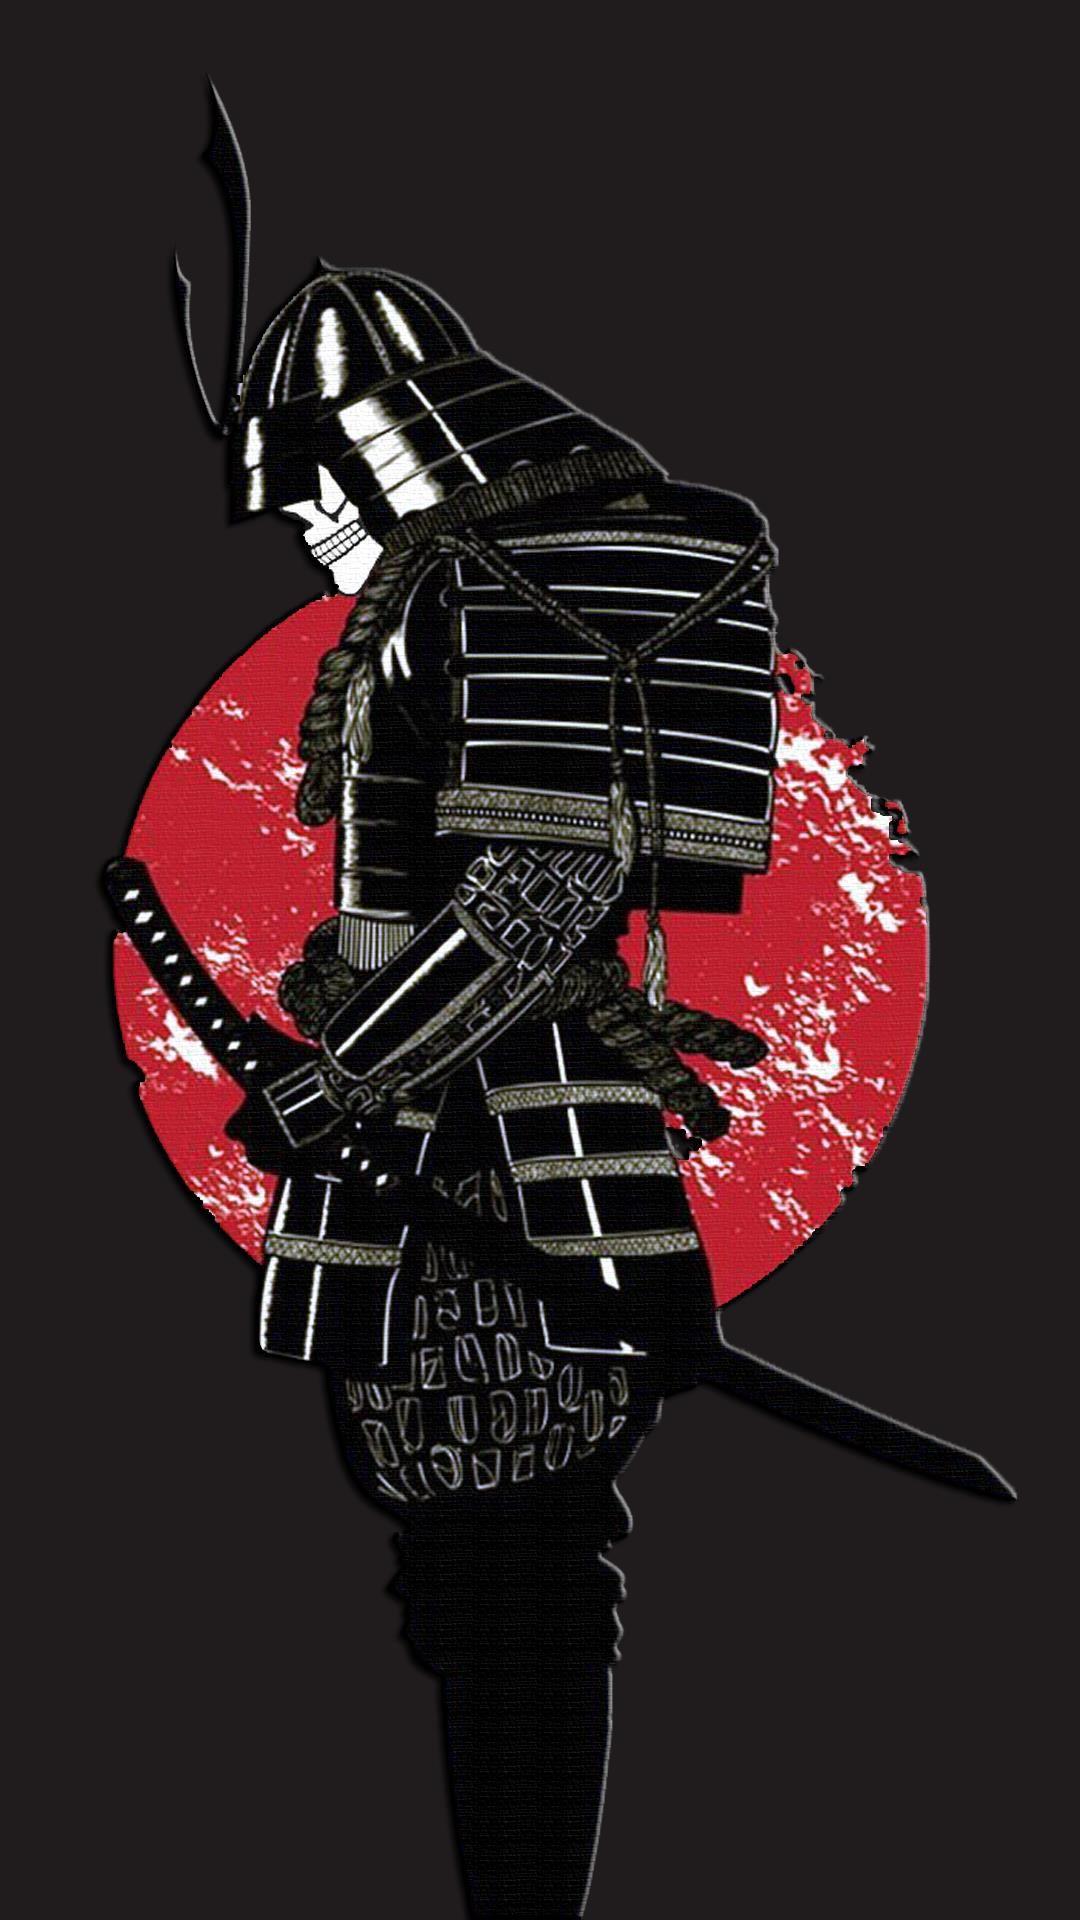 Samurai Iphone Wallpapers Top Free Samurai Iphone Backgrounds